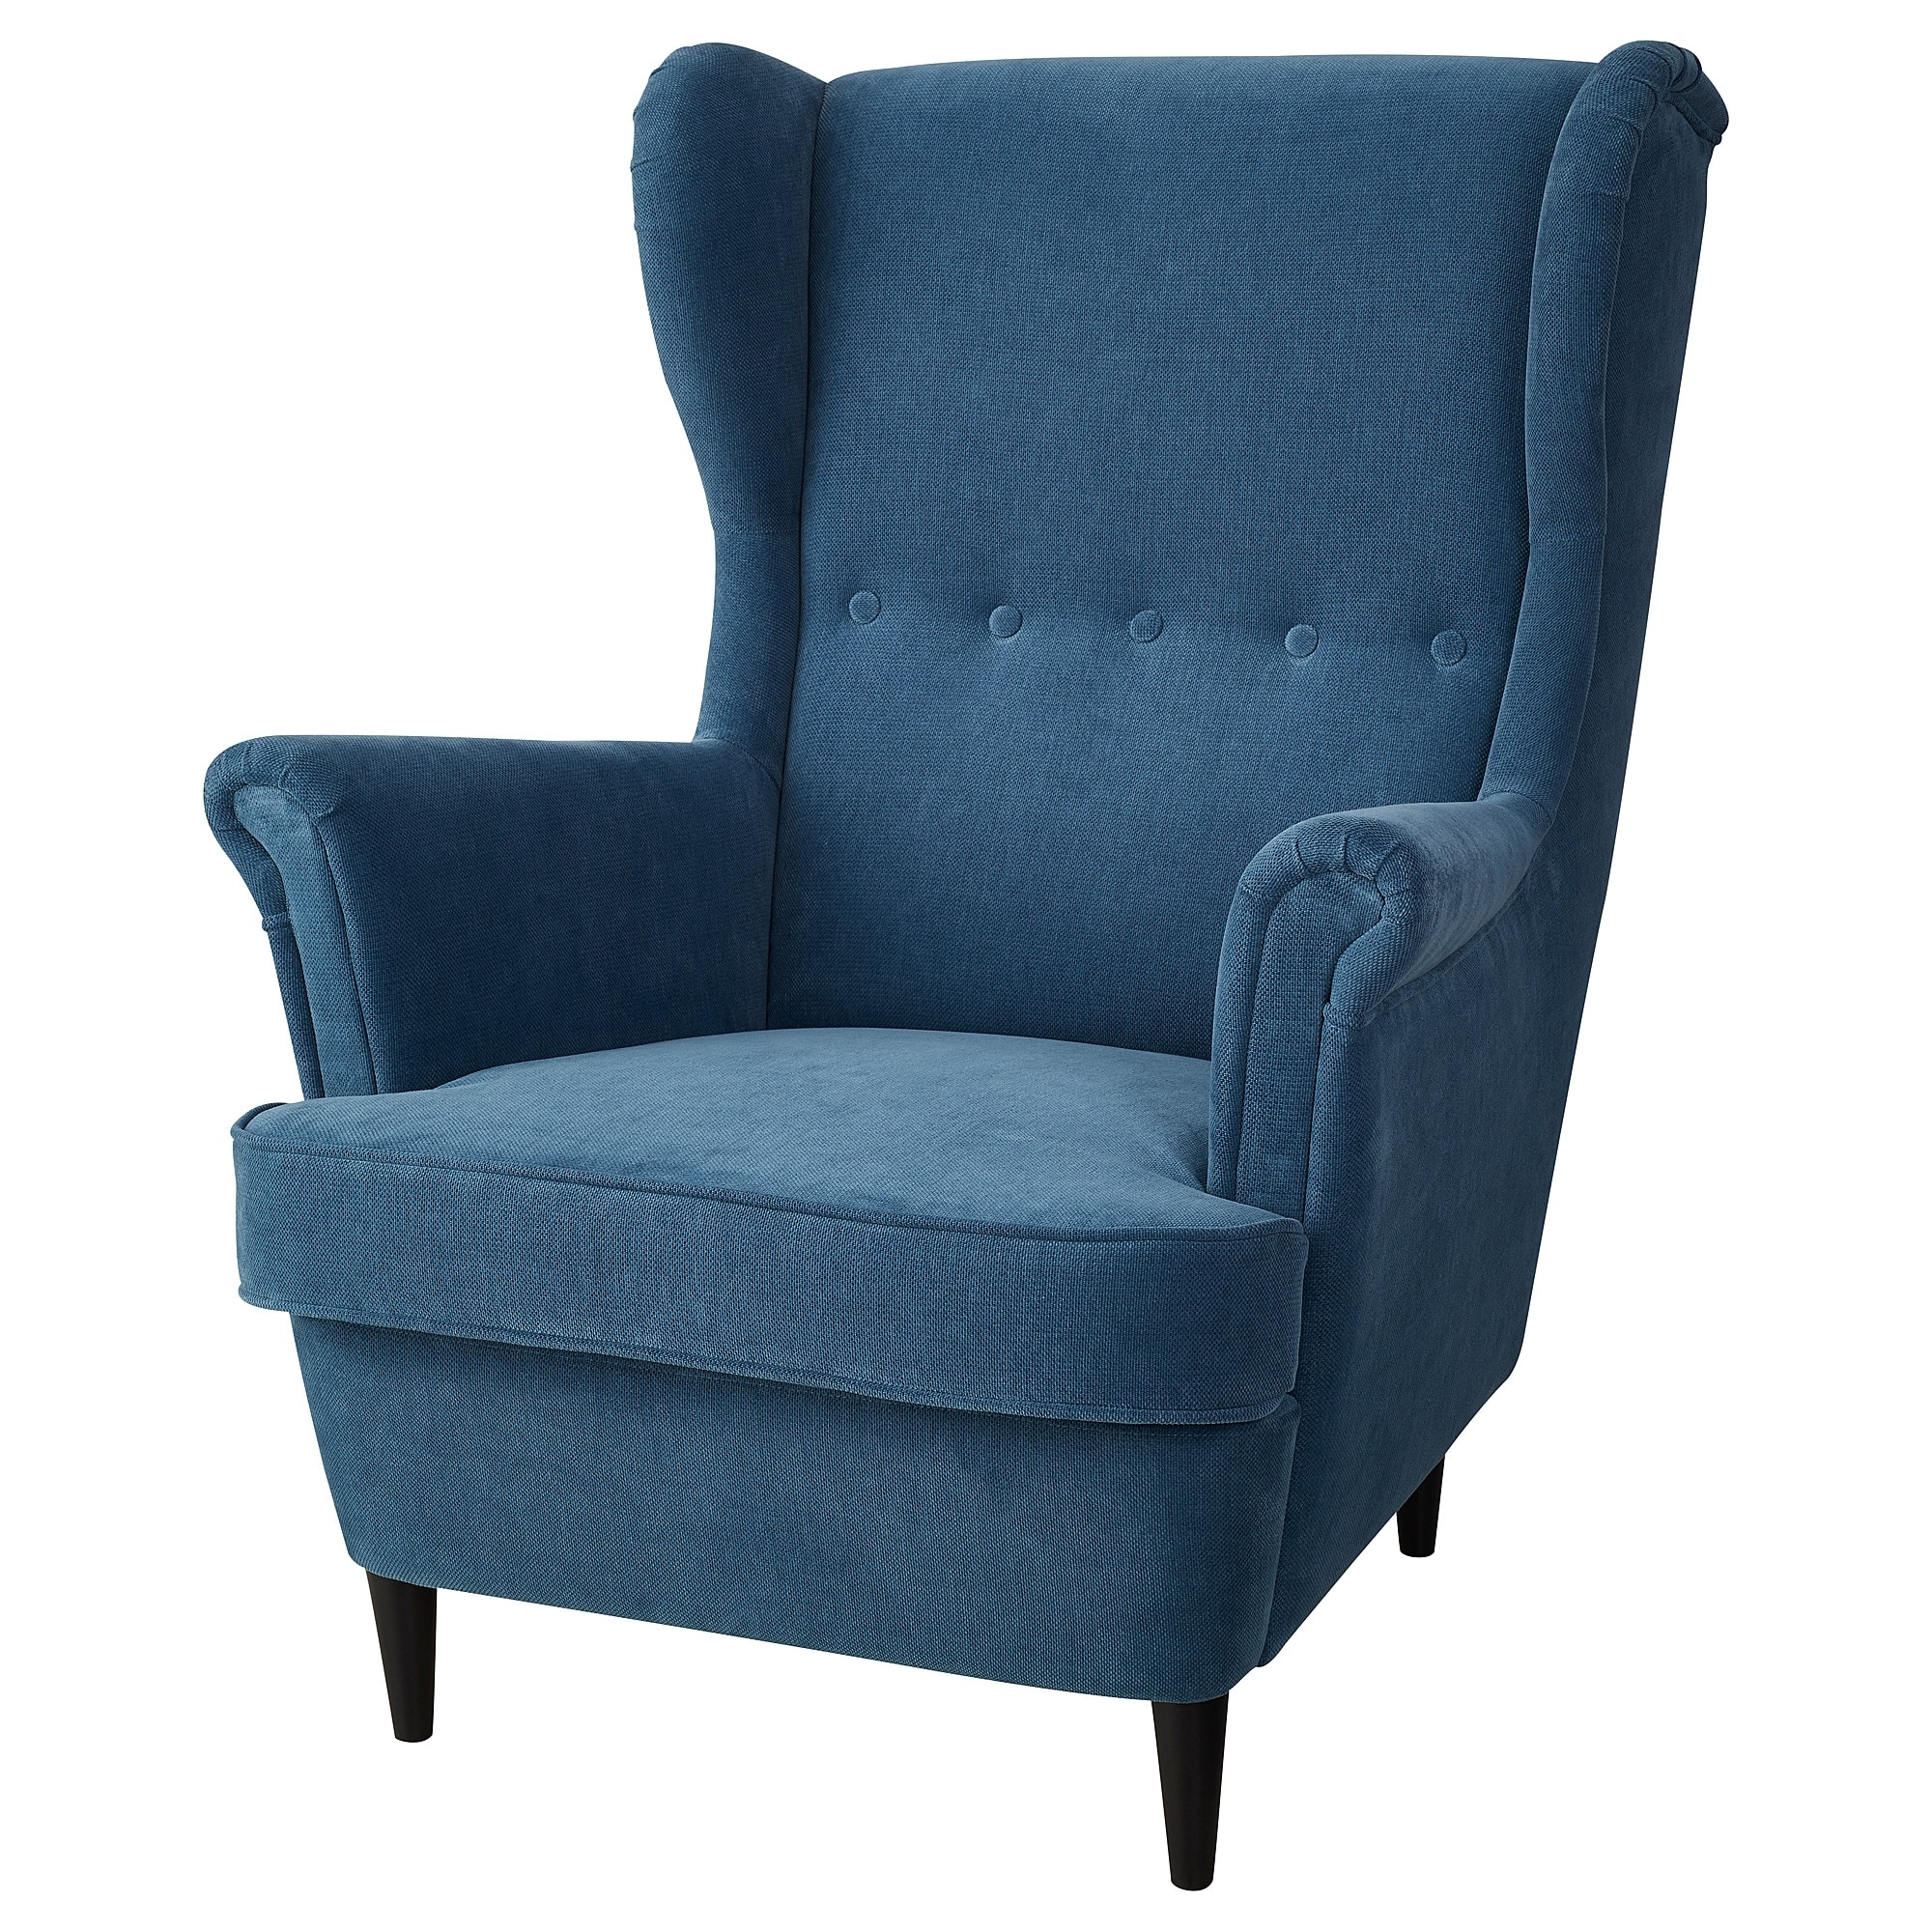 Inspiration about Pilo Blue Side Chairs Inside Most Up To Date Strandmon Wing Chair Tallmyra Blue – Ikea (#7 of 20)